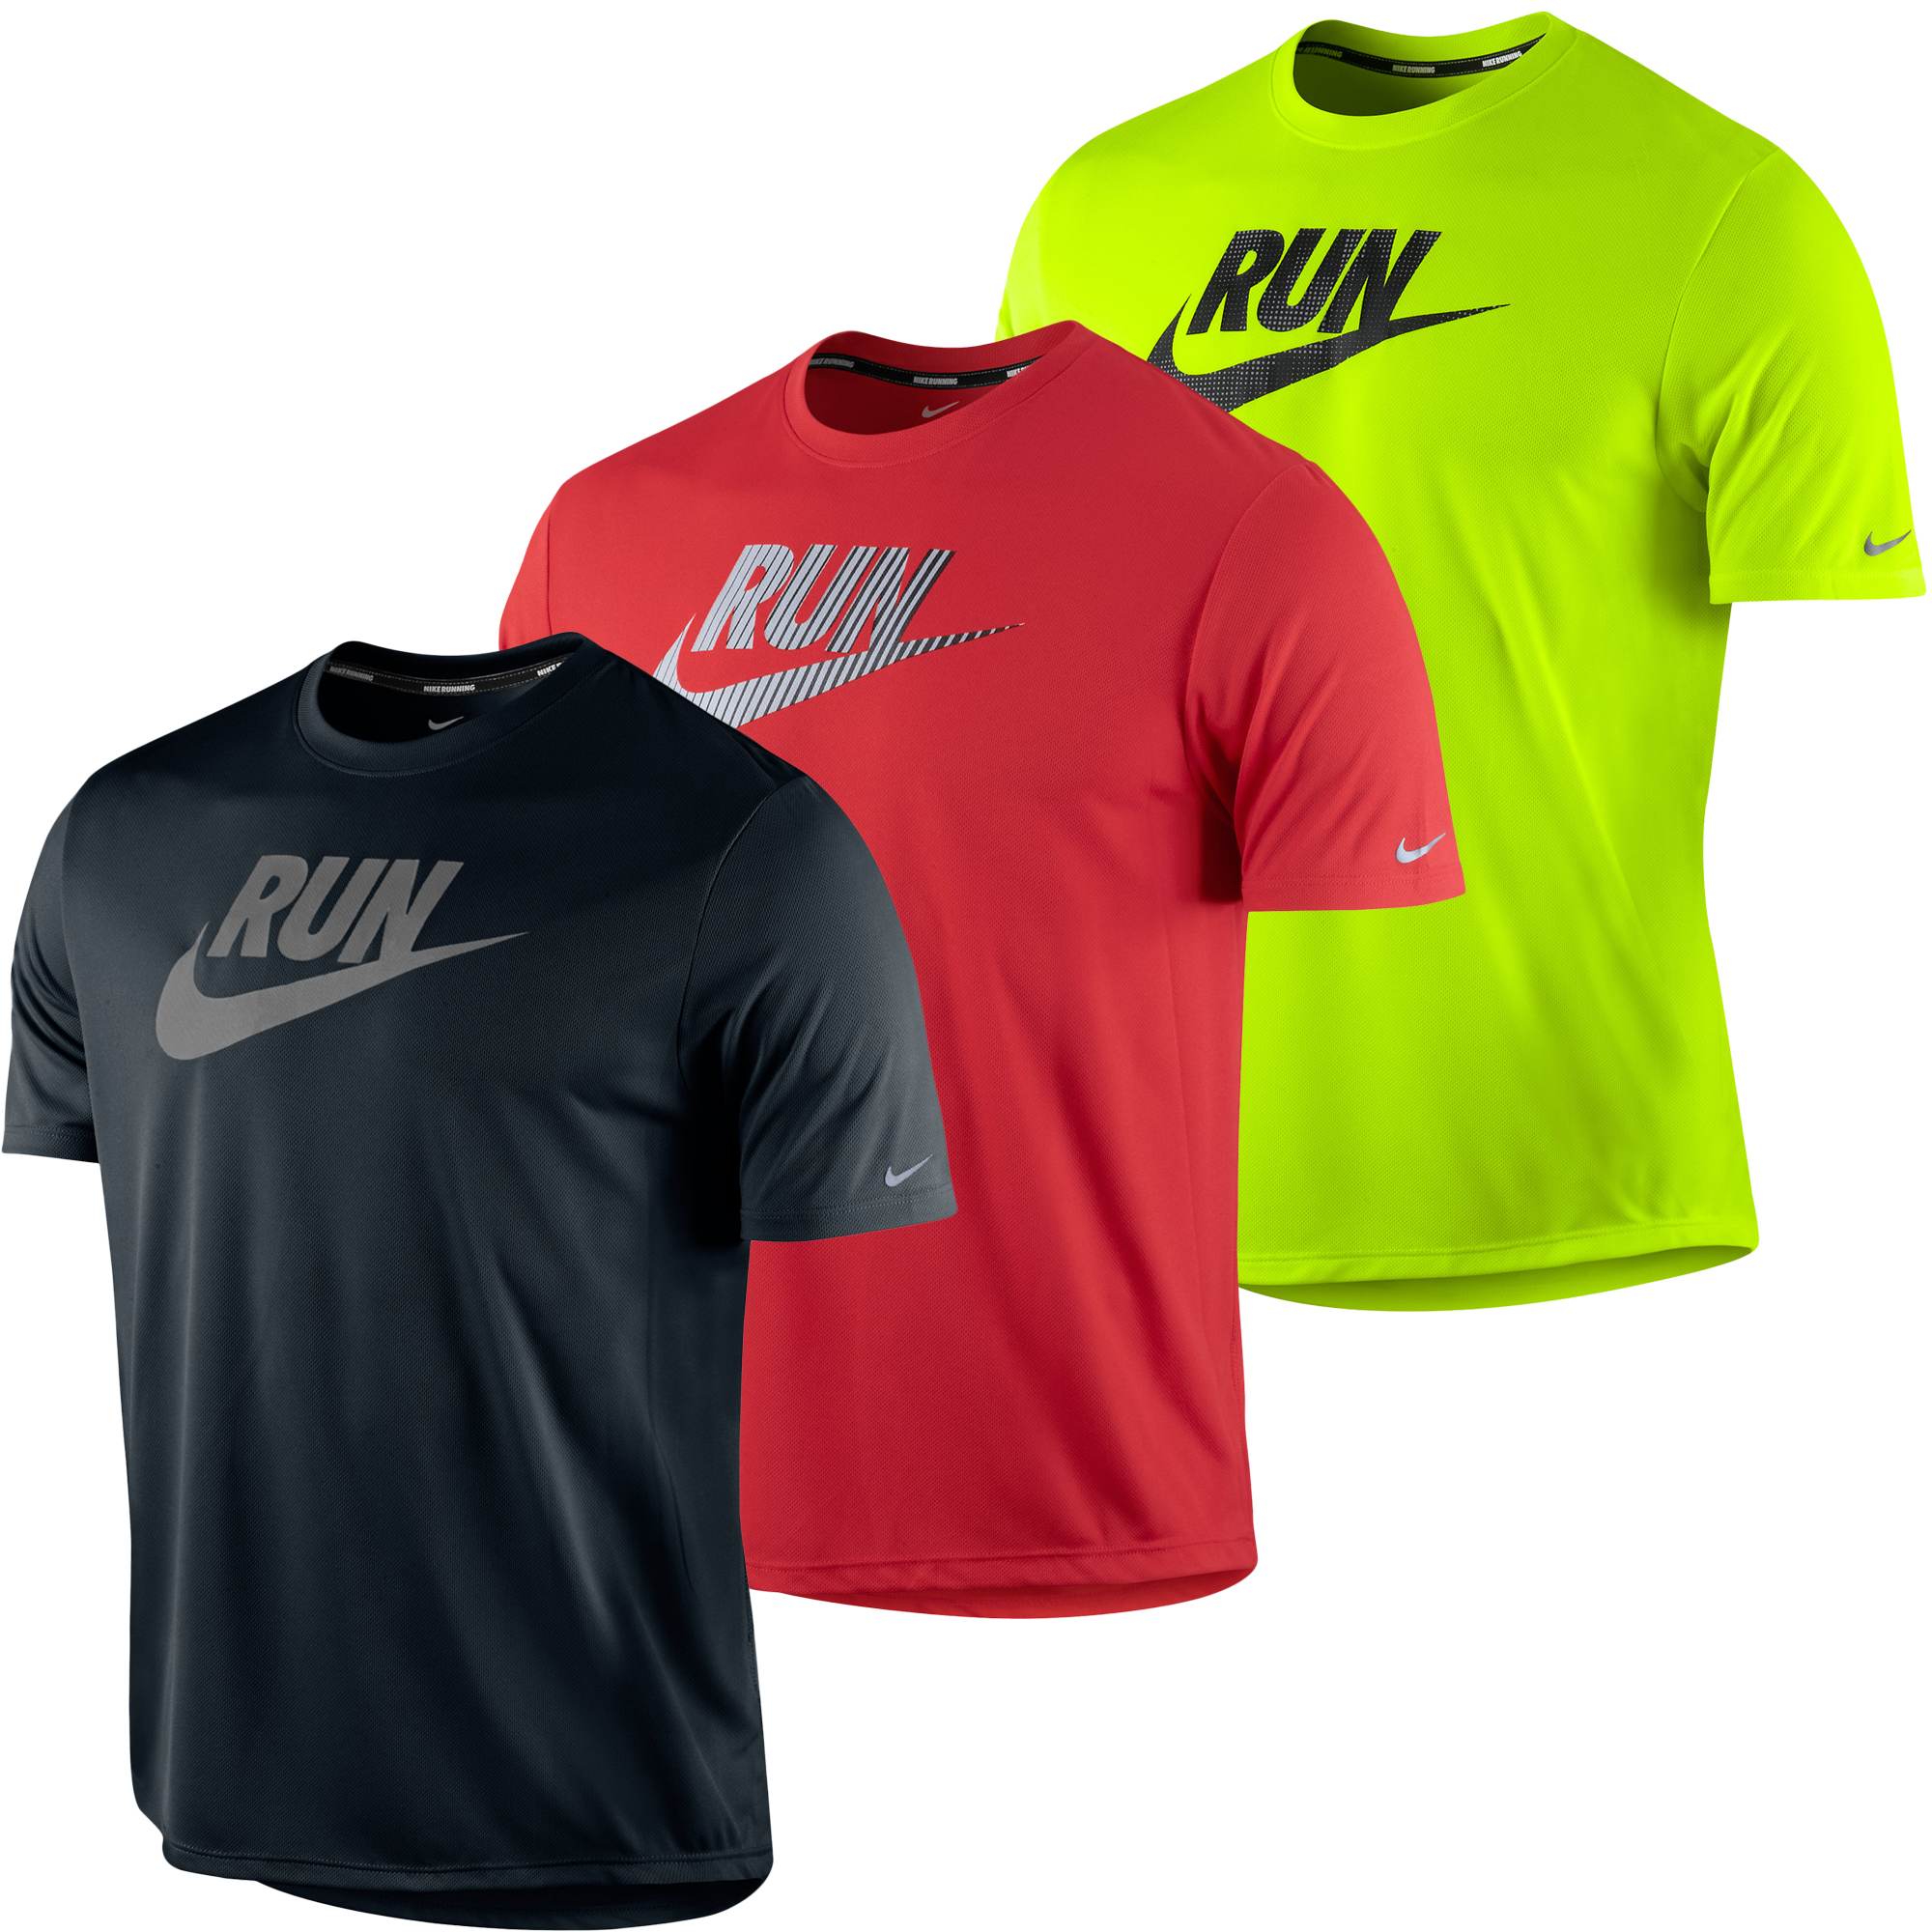 Tee Sp13 Swoosh Run Wiggle France InternalNike POk0wn